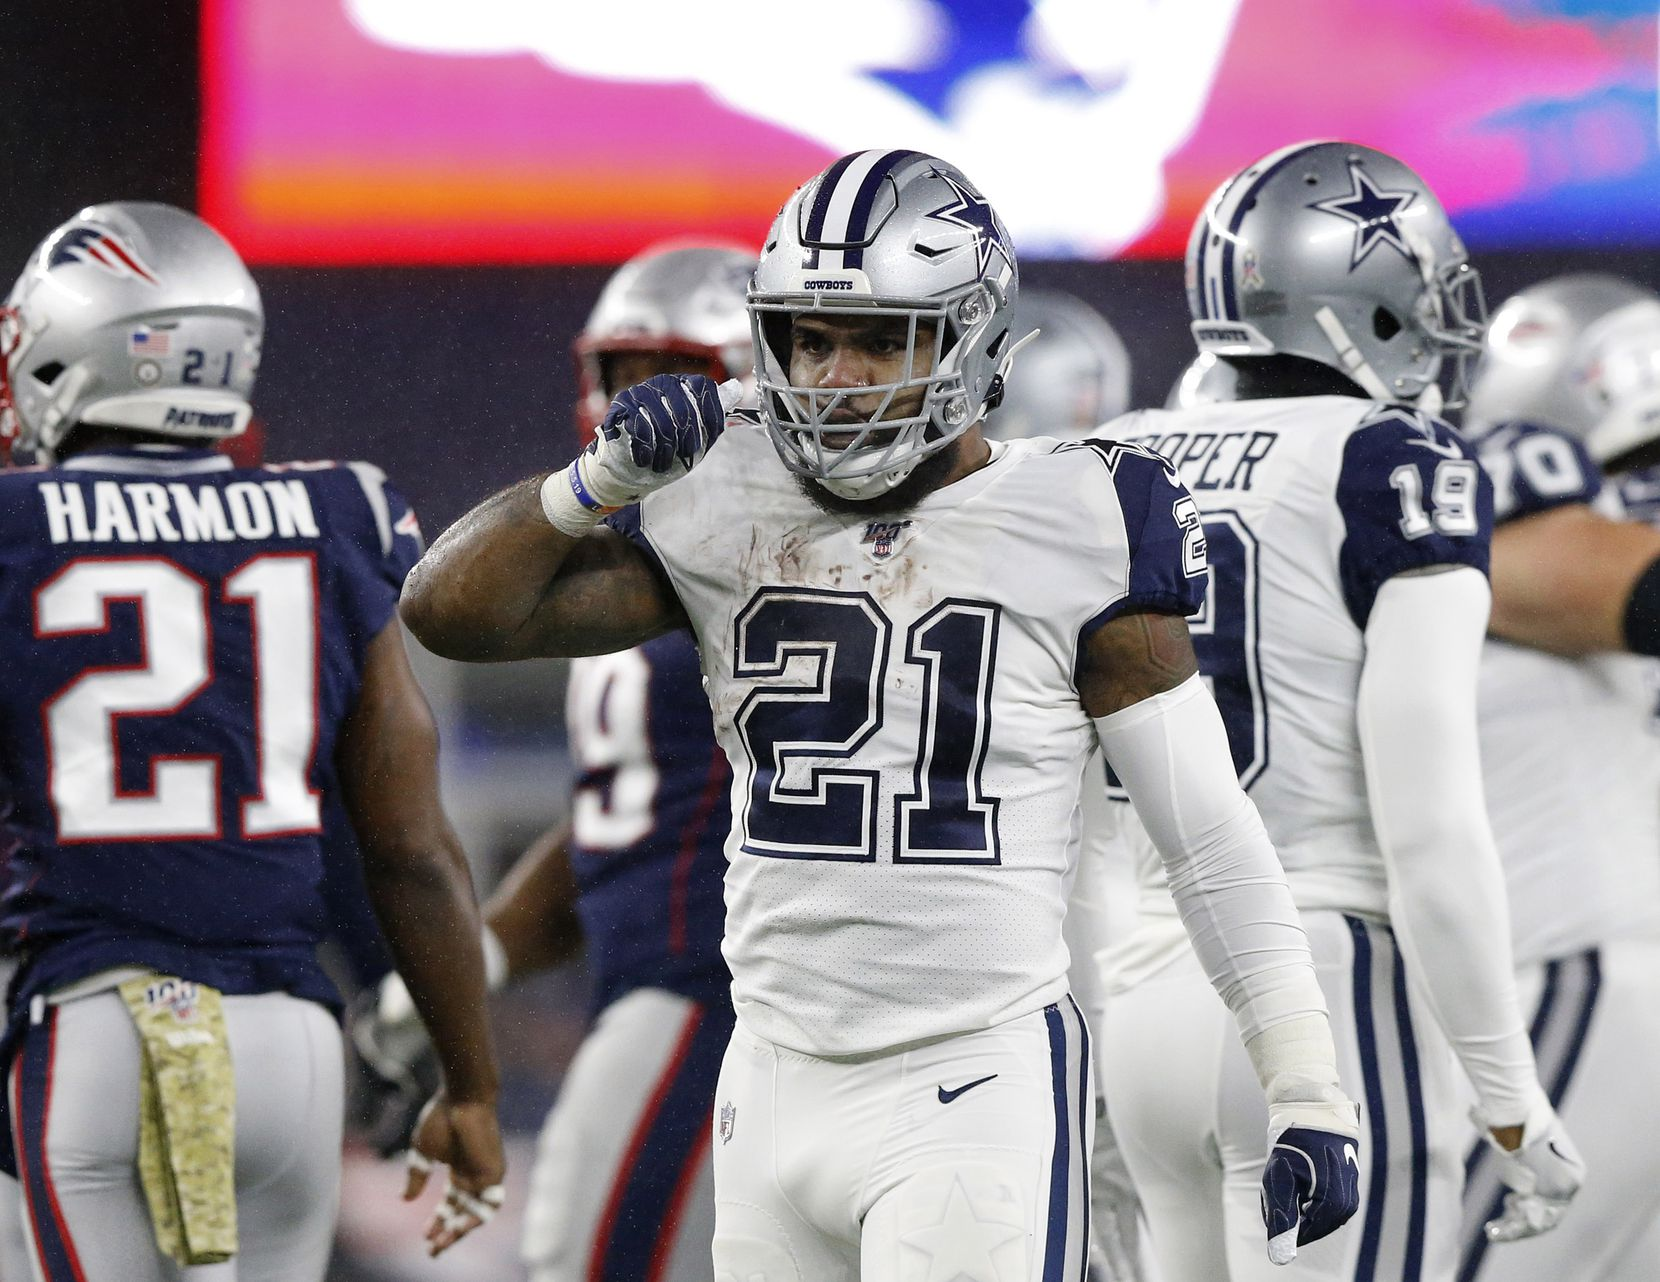 Dallas Cowboys running back Ezekiel Elliott (21) celebrators after picking up a first quarter first down against the New England Patriots at Gillette Stadium in Foxborough, Massachusetts Sunday, November 24, 2019. (Tom Fox/The Dallas Morning News)